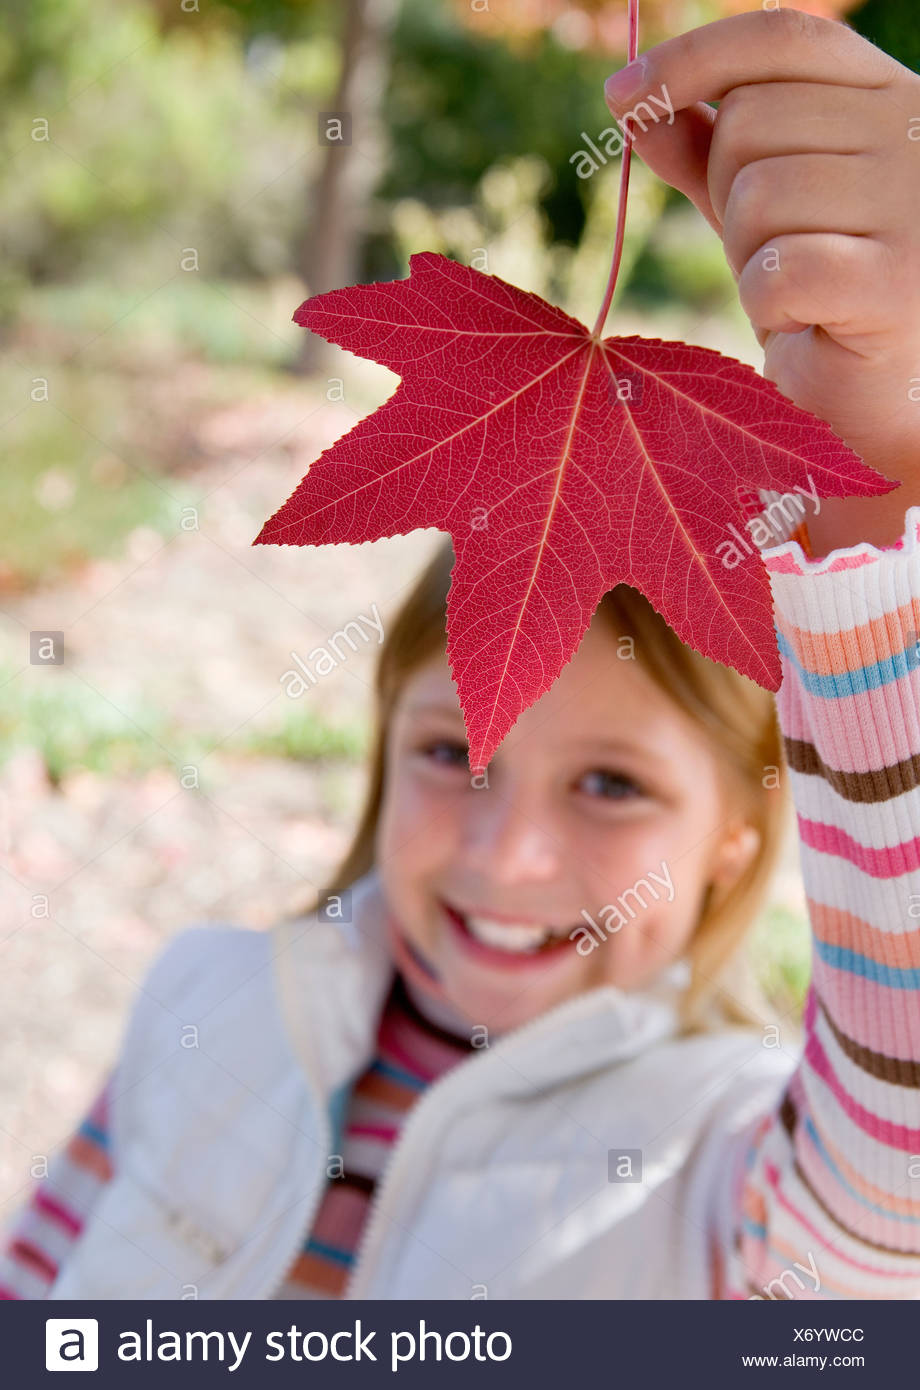 Girl 7 9 holding aloft red maple leaf in park in autumn smiling close up portrait - Stock Image